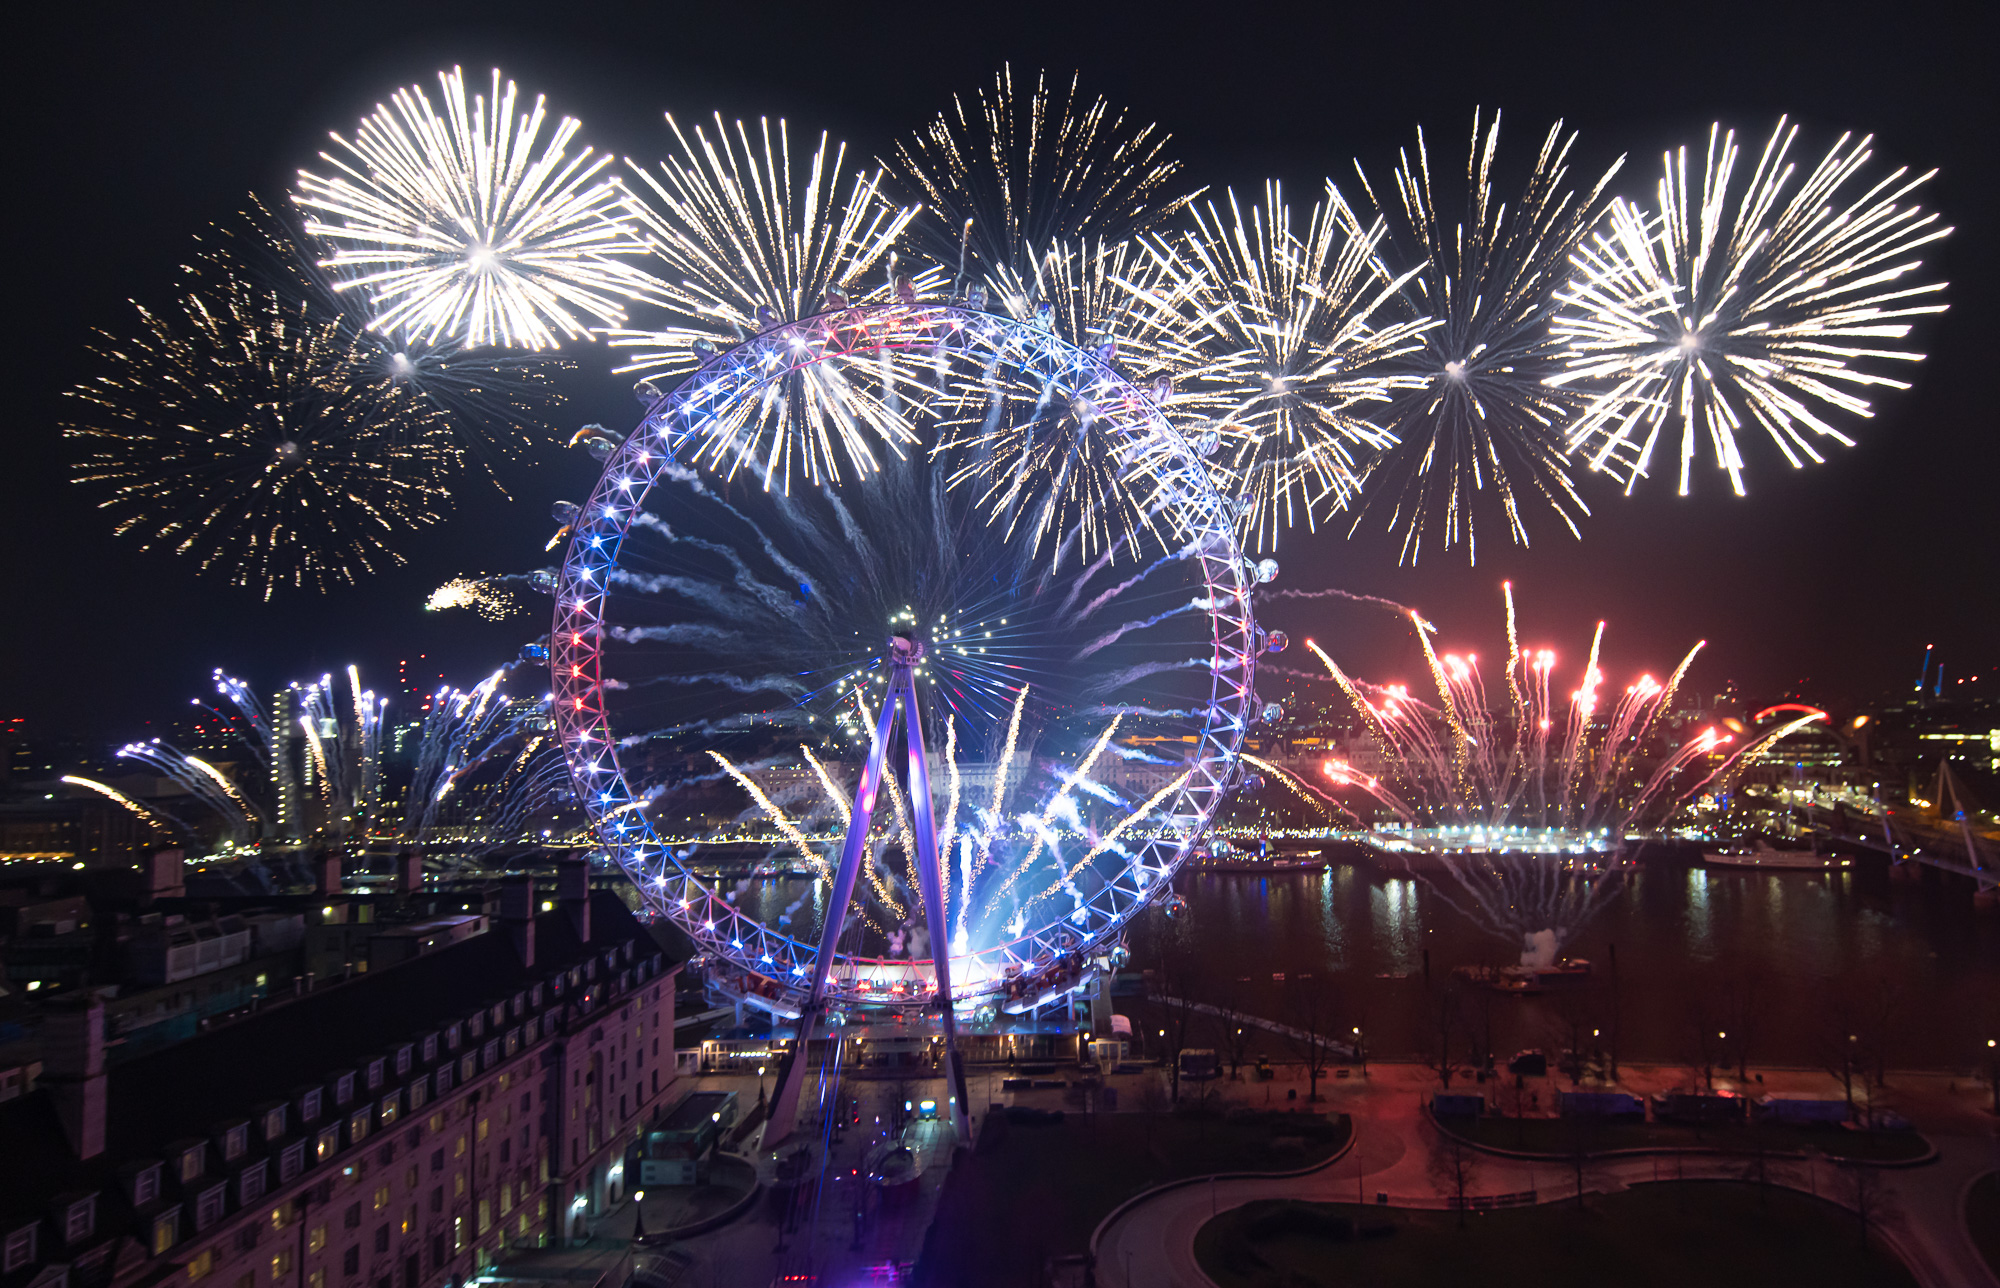 New Years Eve Party: London Fireworks display, London Eye